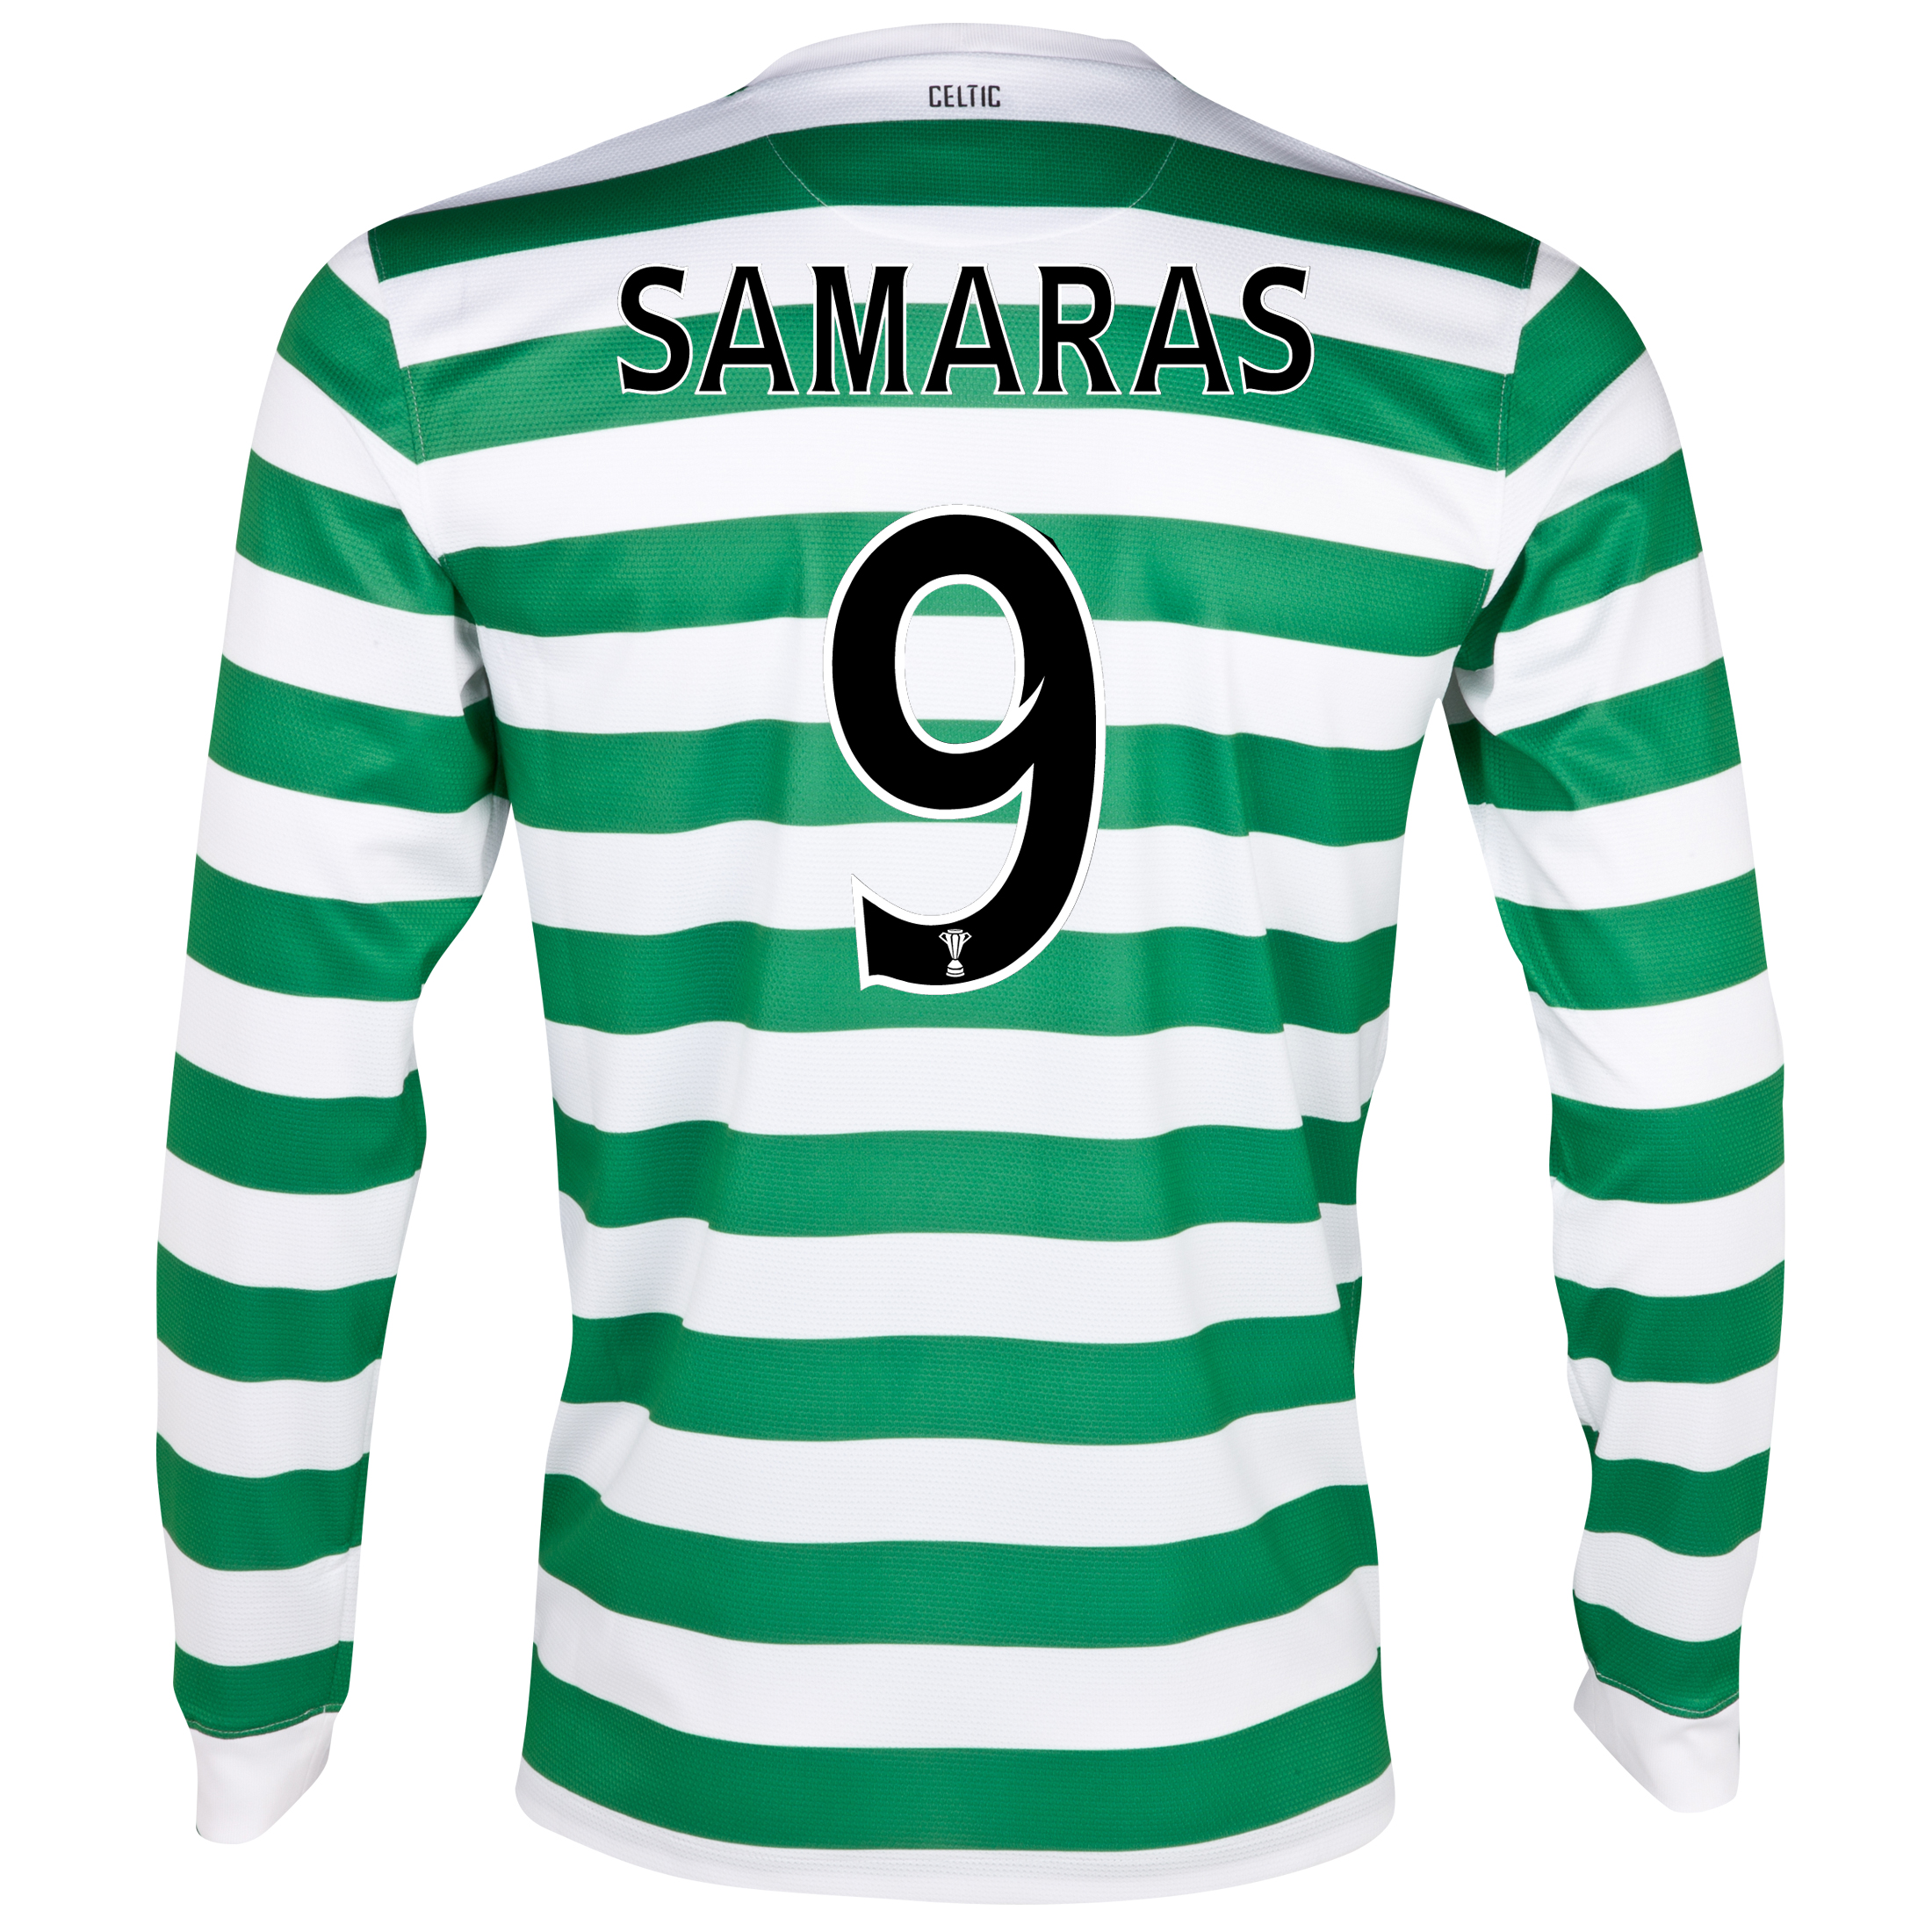 Celtic Home Shirt 2012/13 - Long Sleeved with Samaras 9 printing